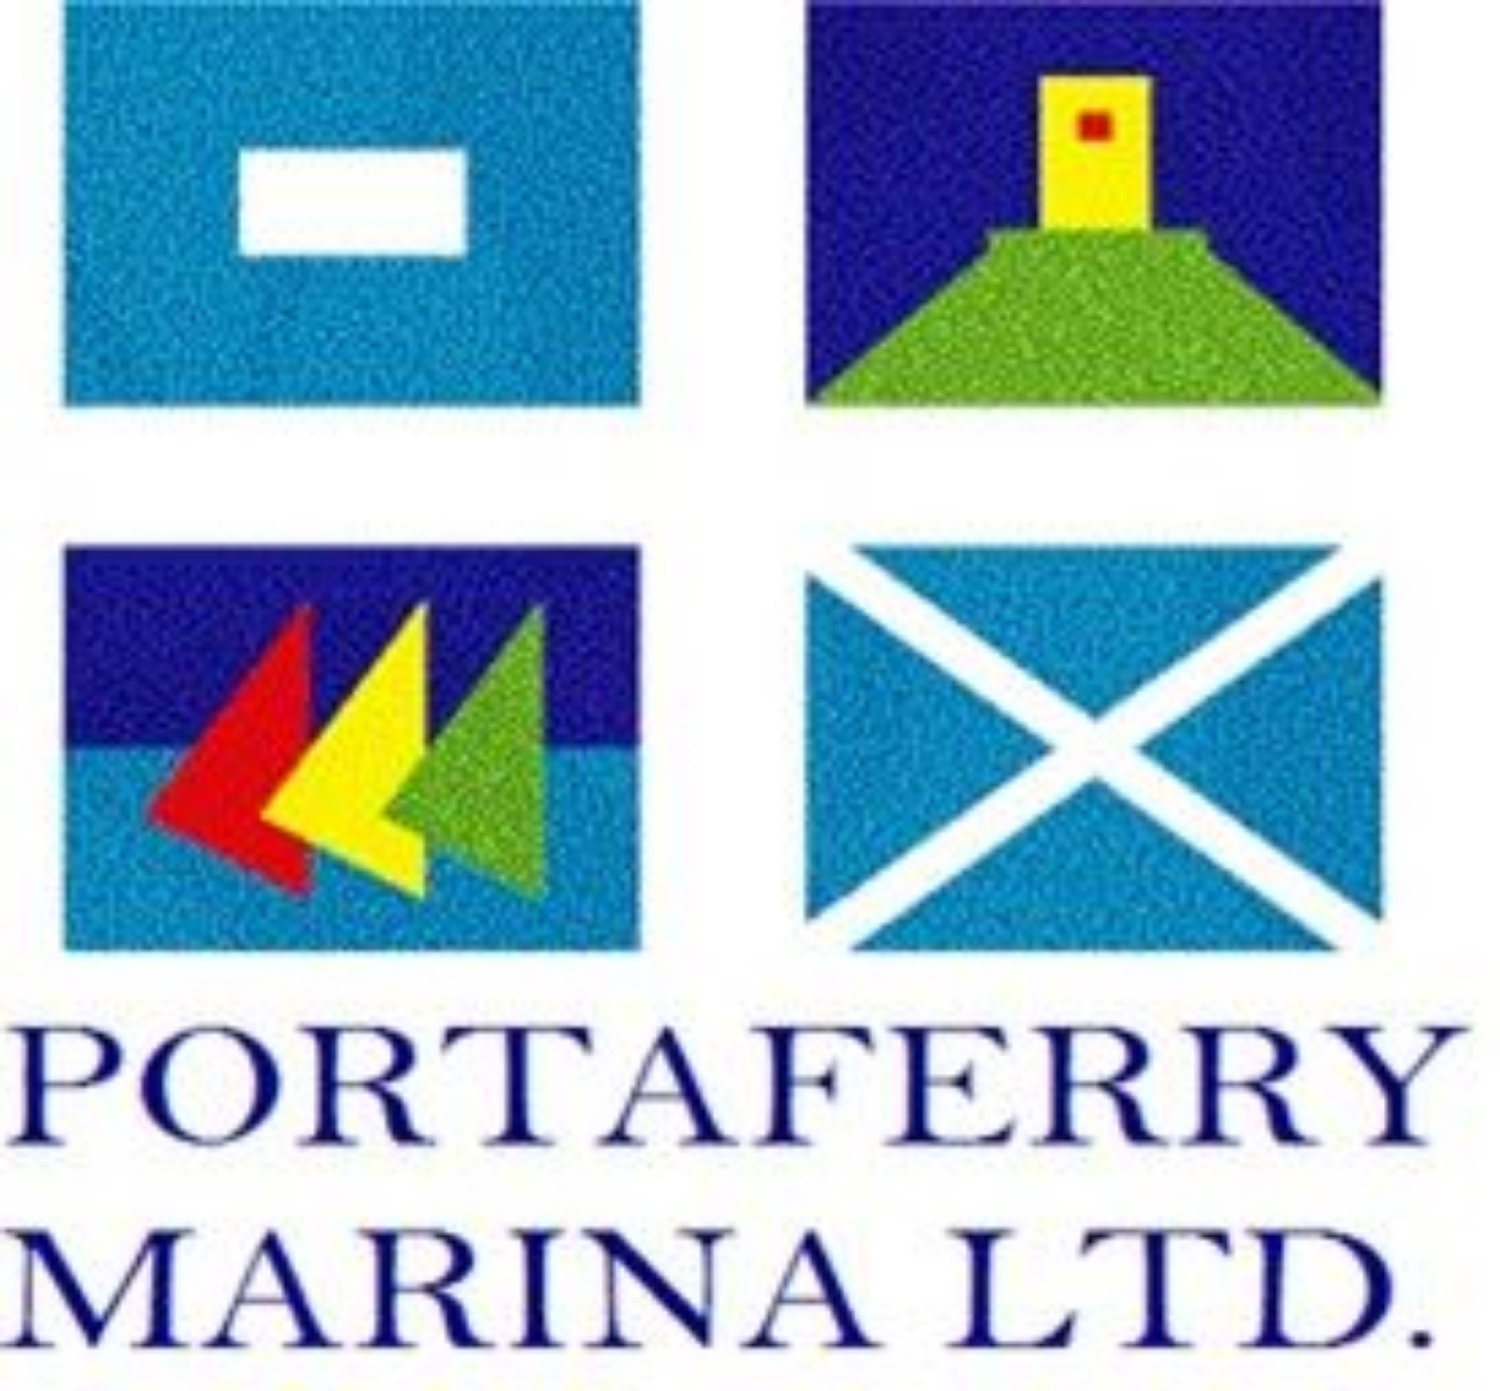 Portaferry Marina Ltd.